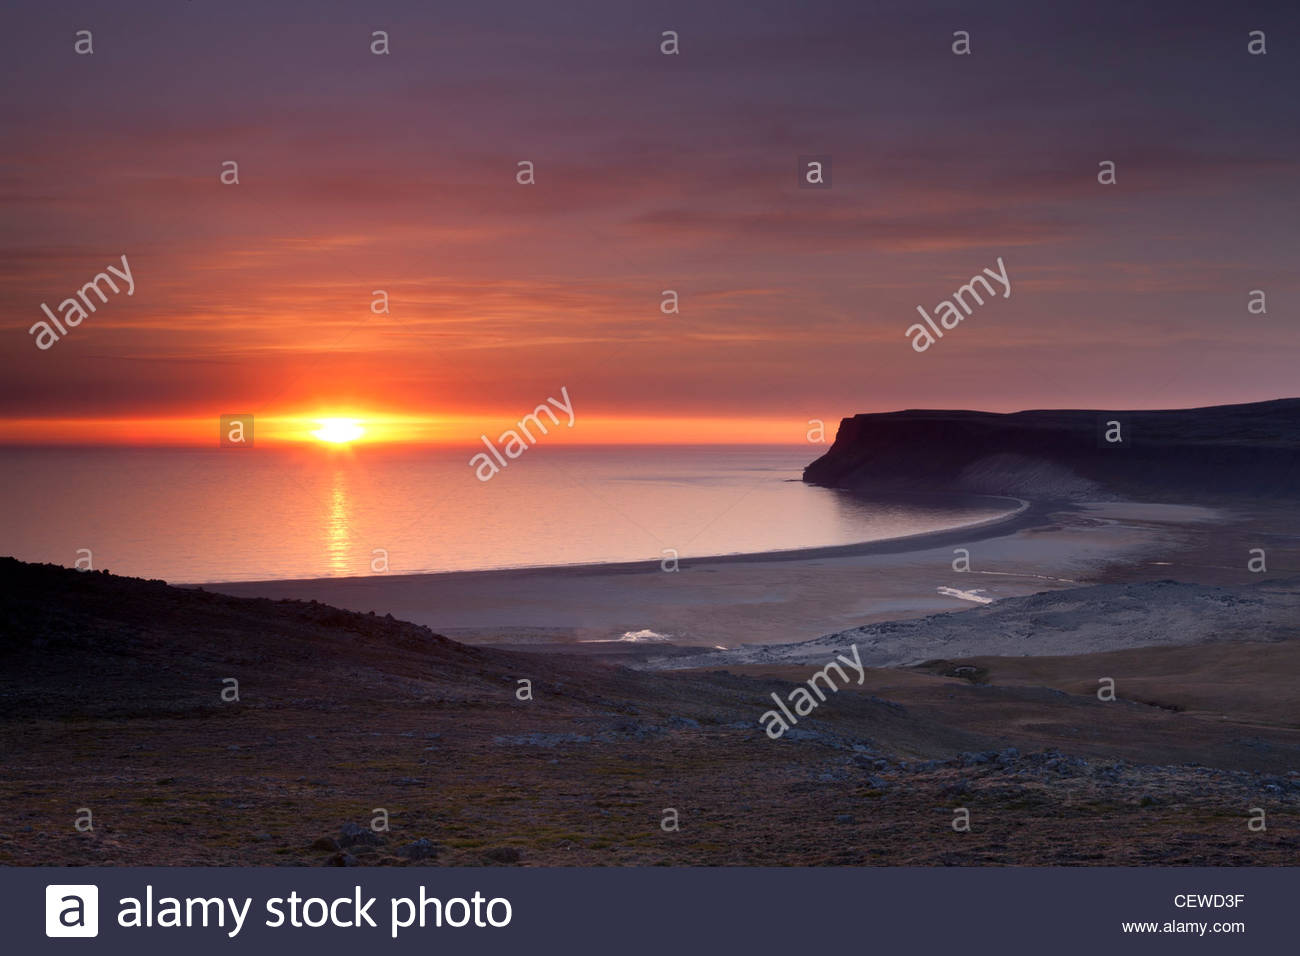 The sun sets over Breiðavik, a small bay that empties into the Altantic Ocean in western Iceland. - Stock Image